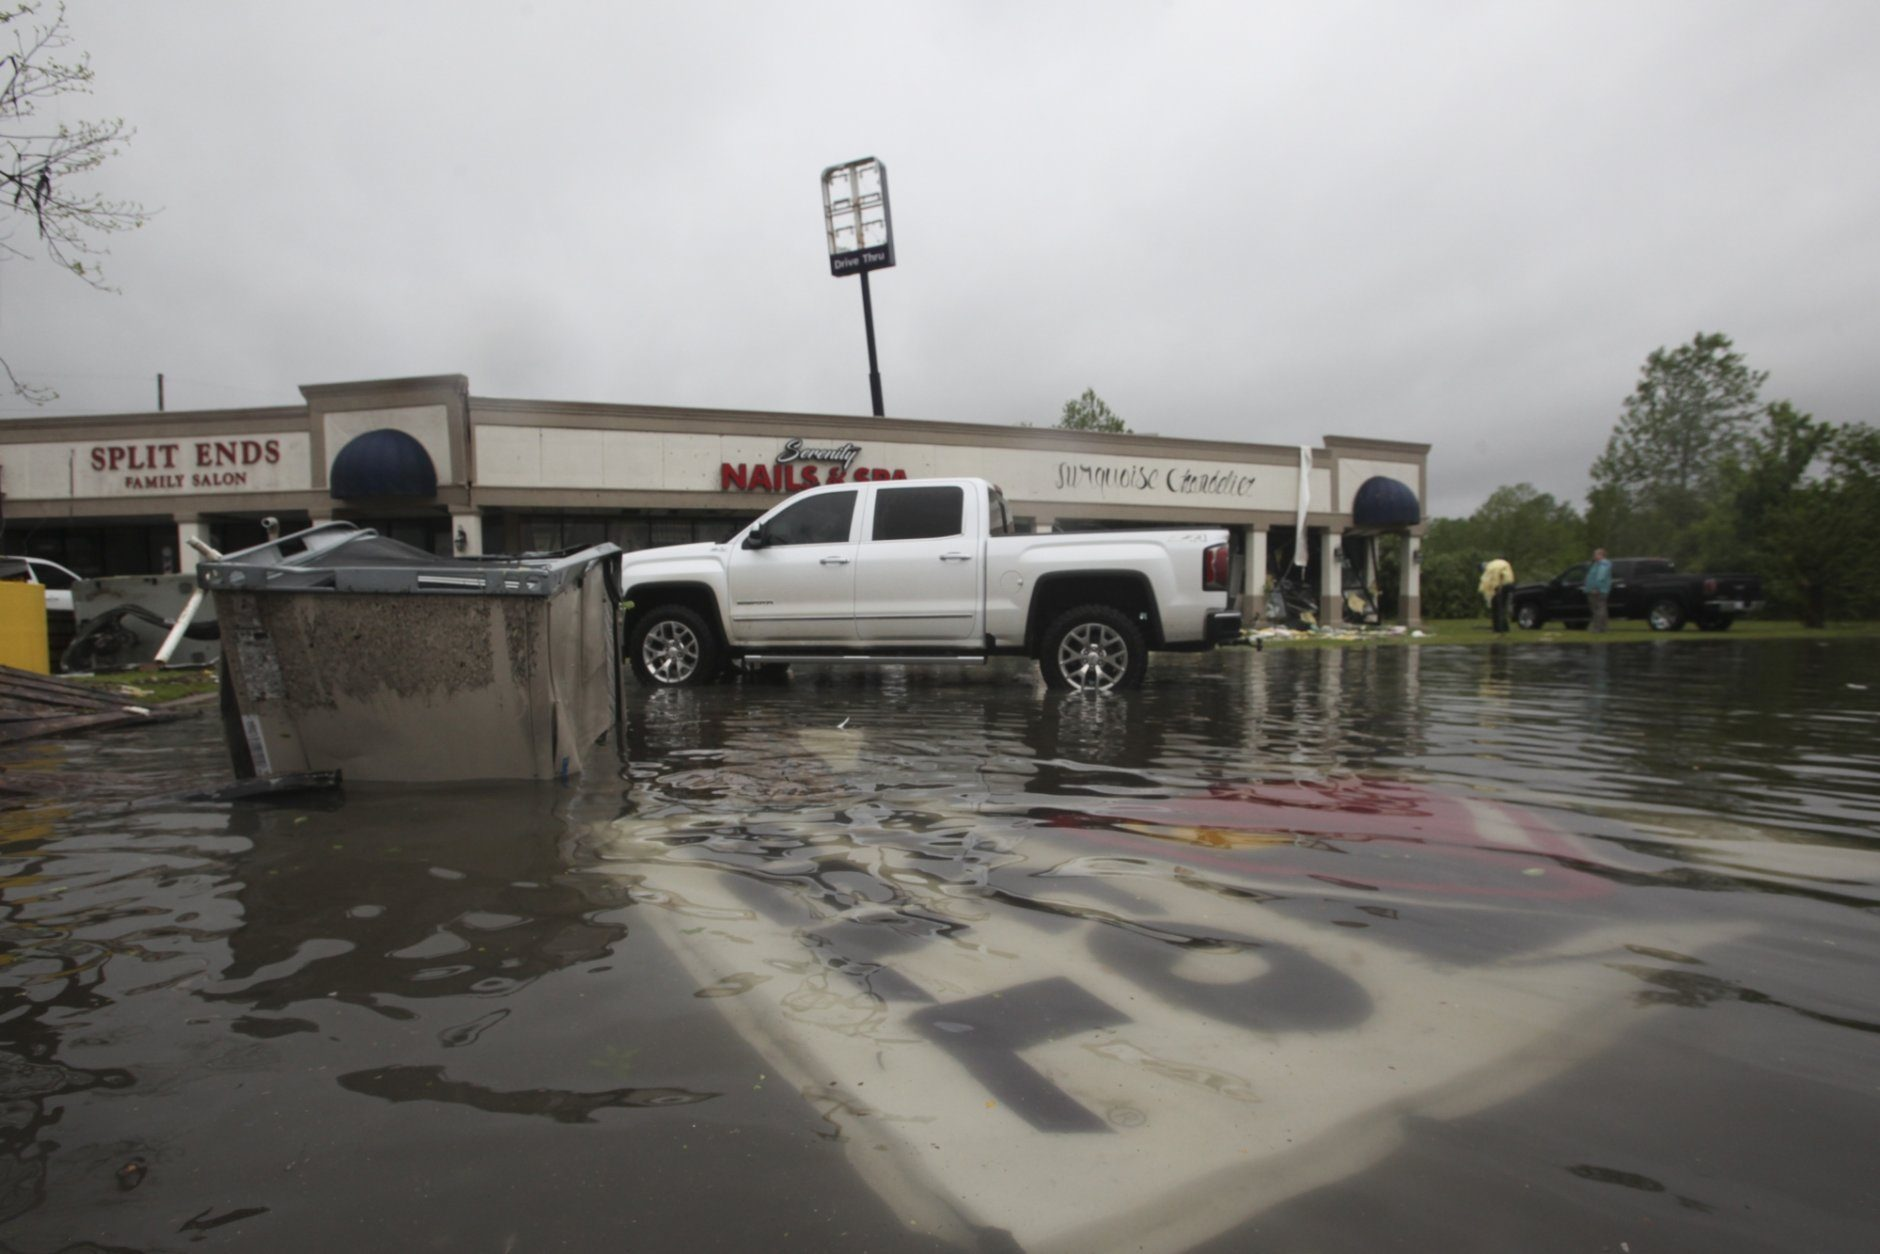 Debris is strewn in flooded water in the Pemberton Quarters strip mall following severe weather Saturday, April 13, 2019 in Vicksburg, Miss. Authorities say a possible tornado has touched down in western Mississippi, causing damage to several businesses and vehicles. John Moore, a forecaster with the National Weather Service in Jackson, says a twister was reported Saturday in the Vicksburg area of Mississippi and was indicated on radar. (Courtland Wells/The Vicksburg Post via AP)